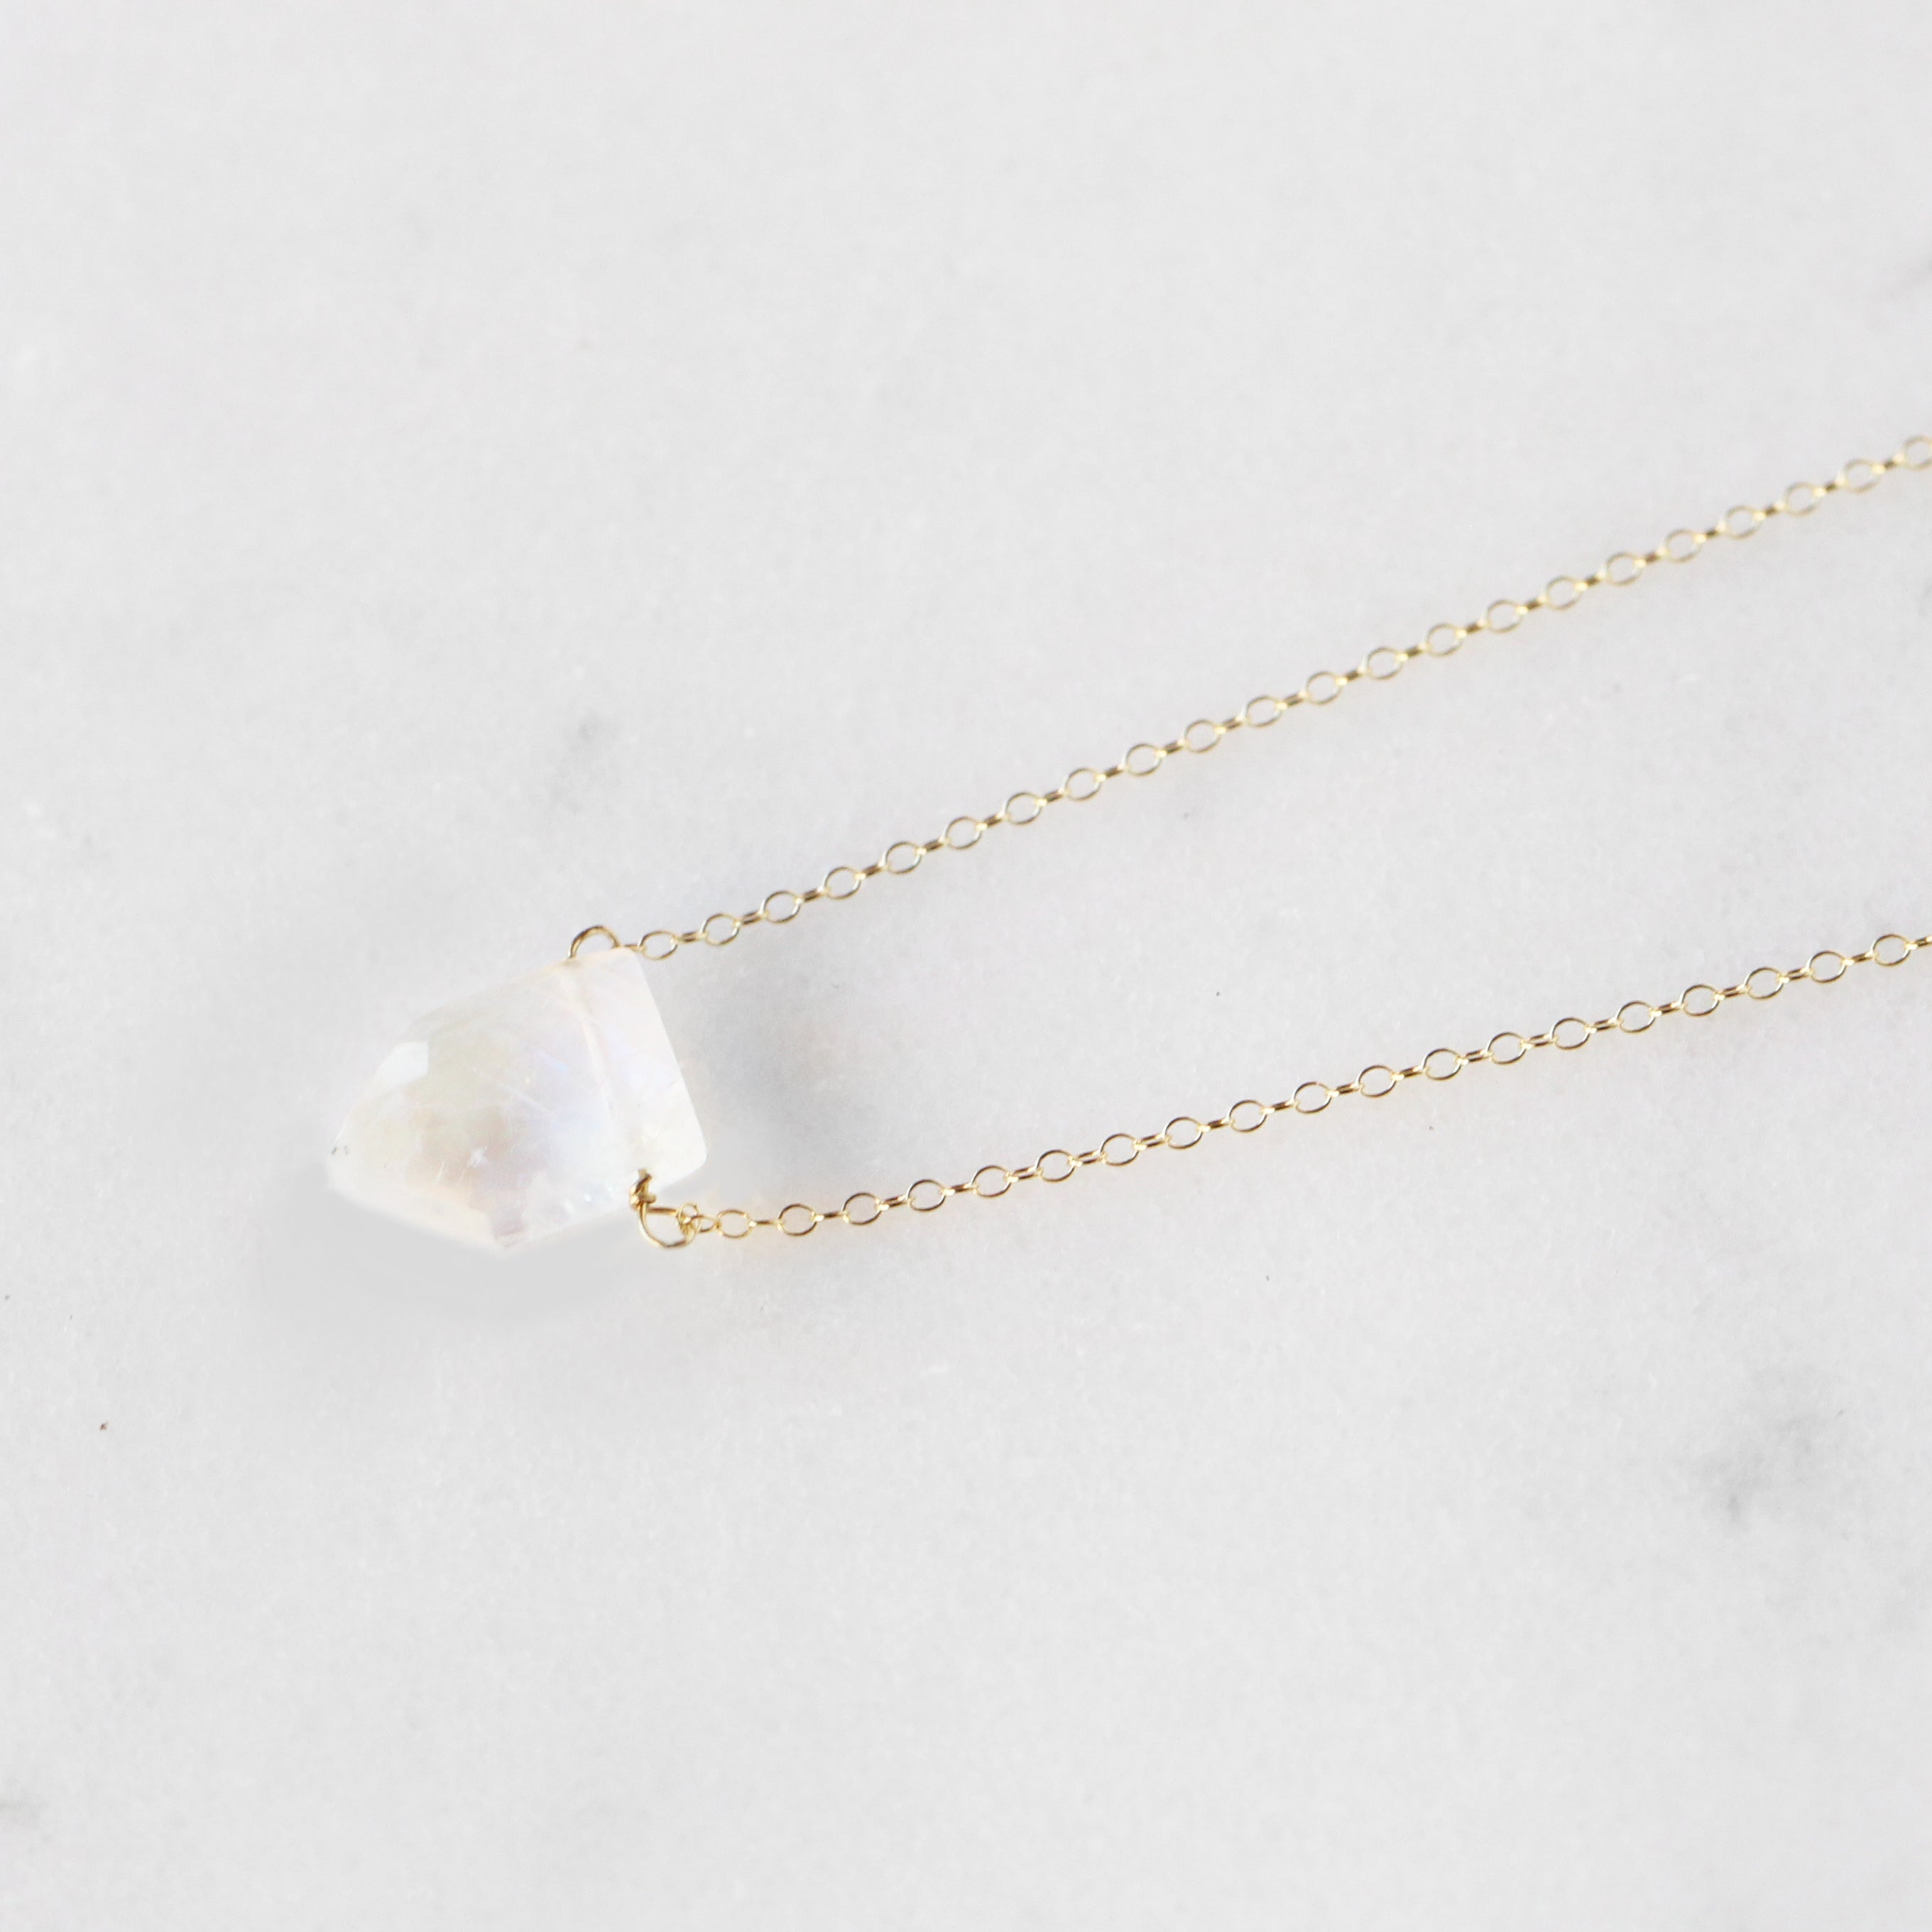 Moonstone Geometric Gemstone Pendant Necklace with 14k Gold Fill or Sterling Silver Chain - Midwinter Co. Alternative Bridal Rings and Modern Fine Jewelry